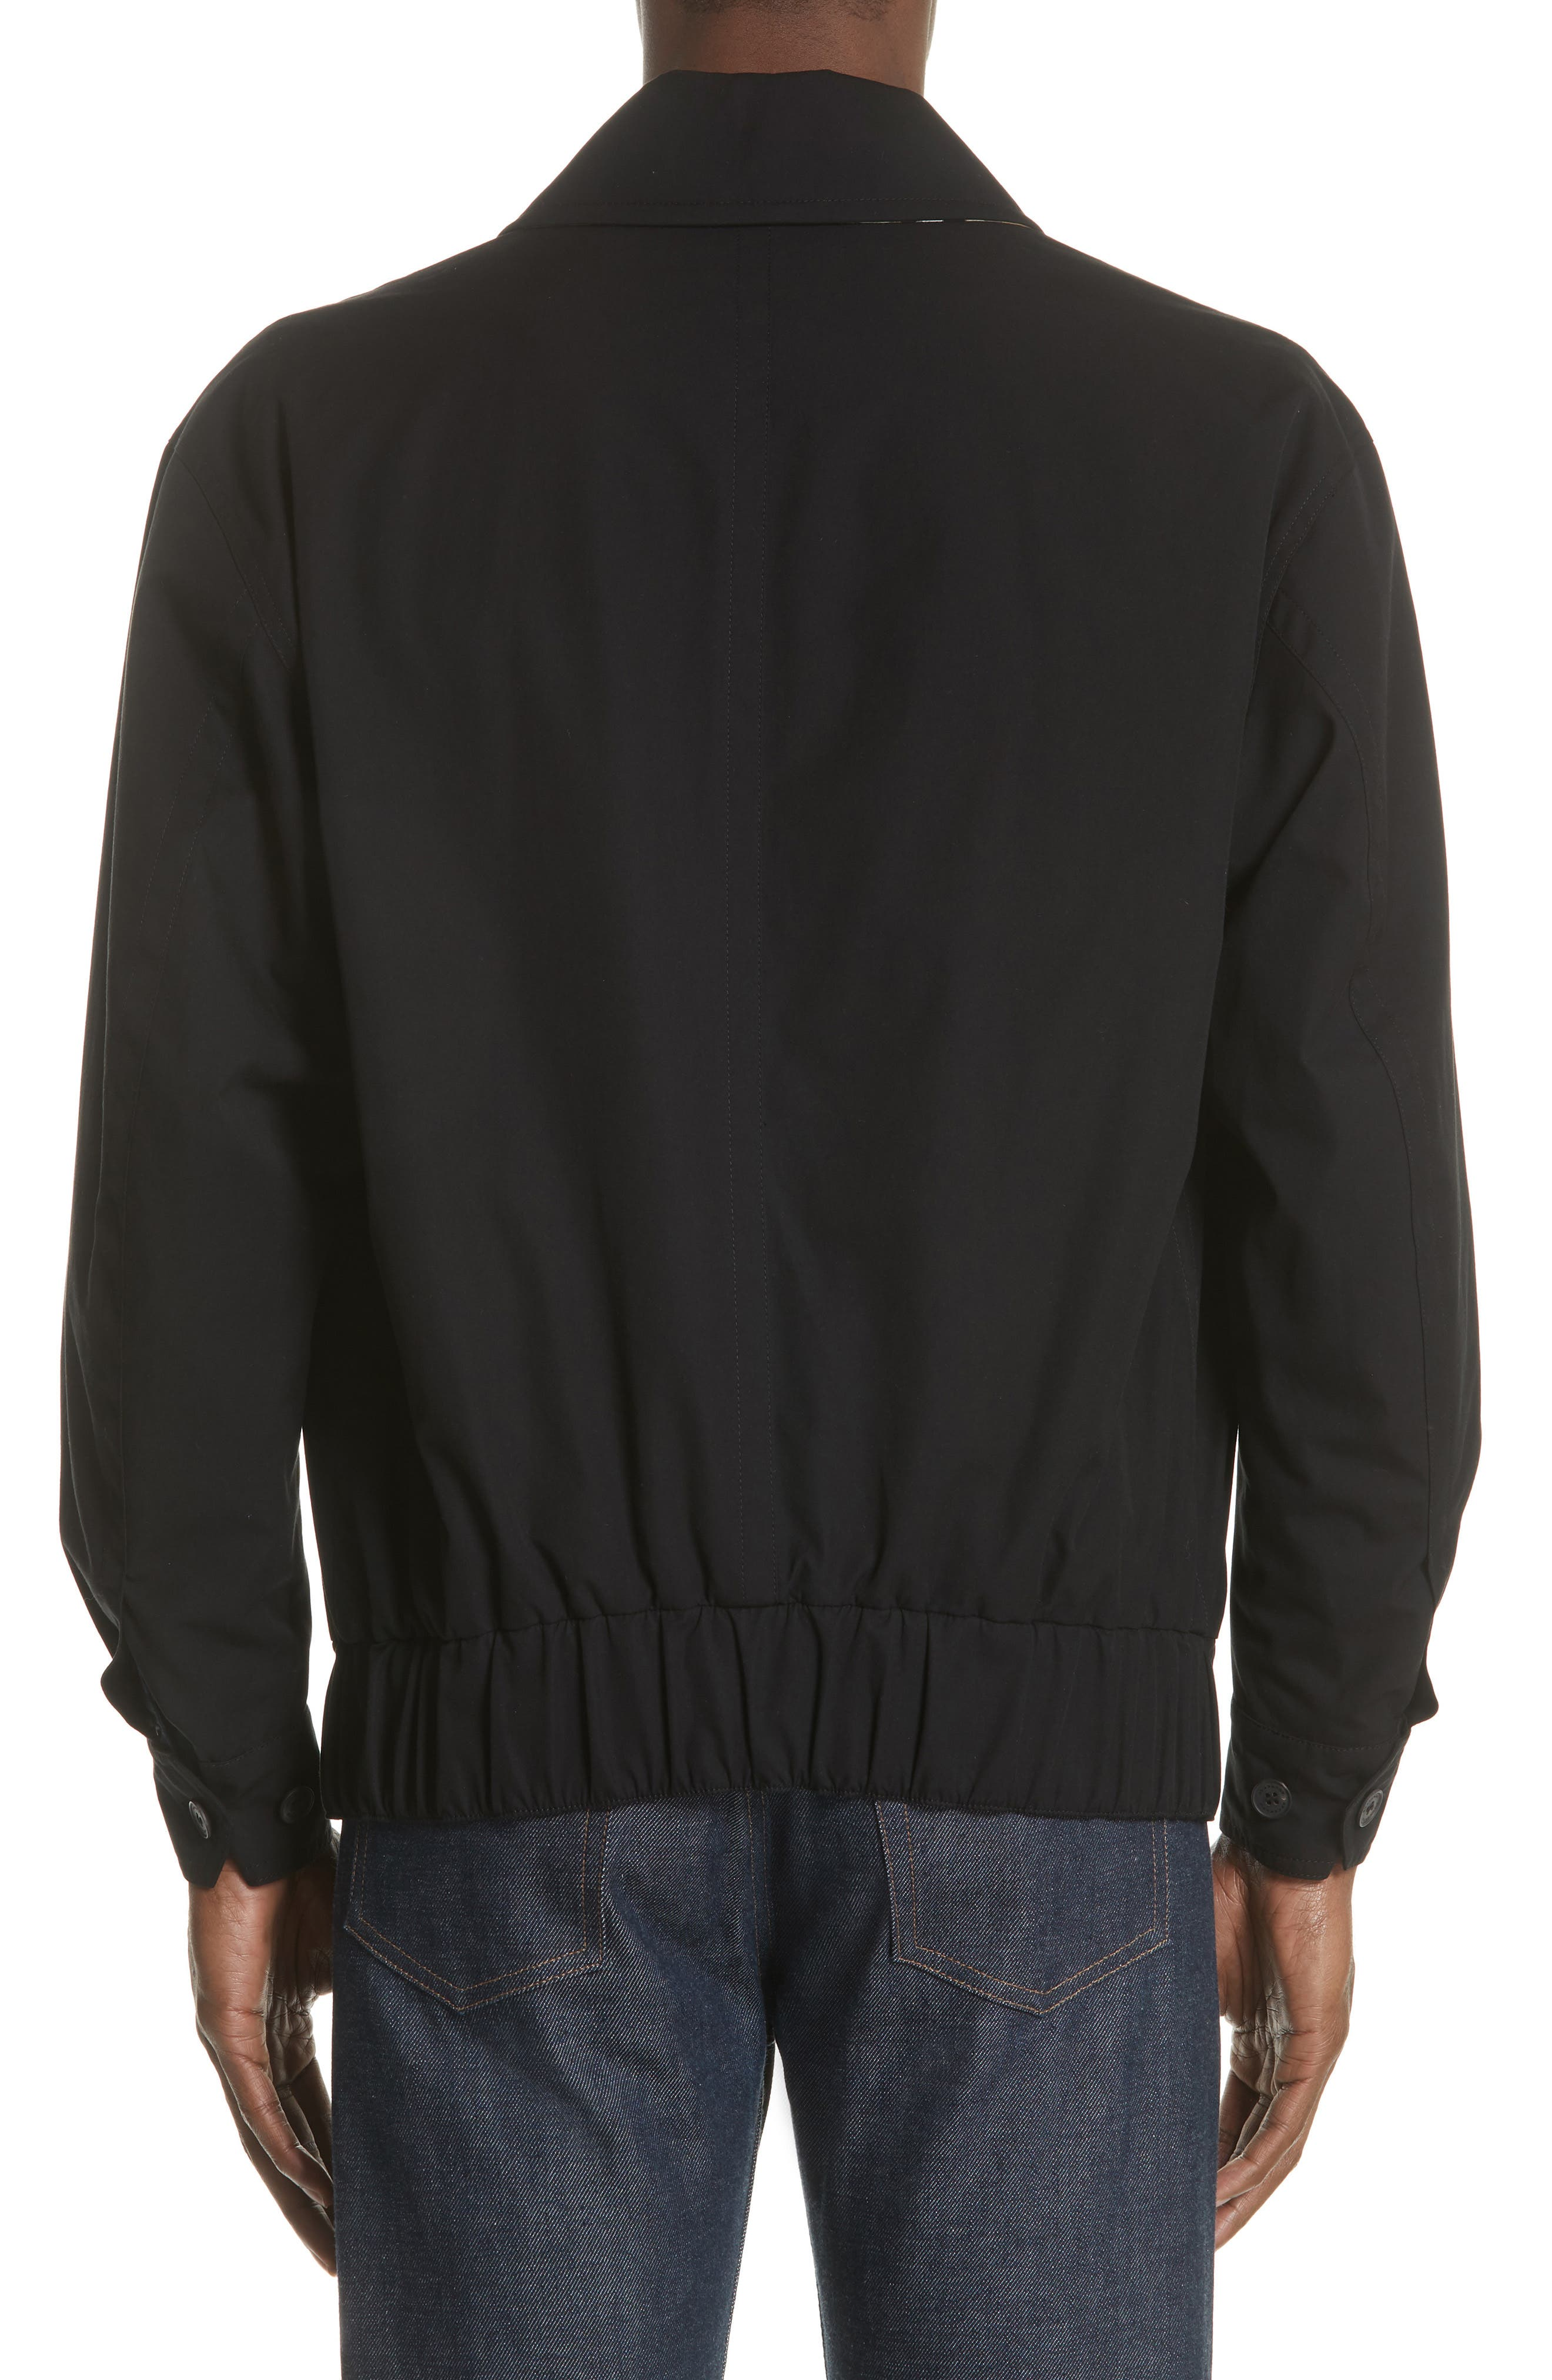 Loweswater Jacket,                             Alternate thumbnail 2, color,                             Black